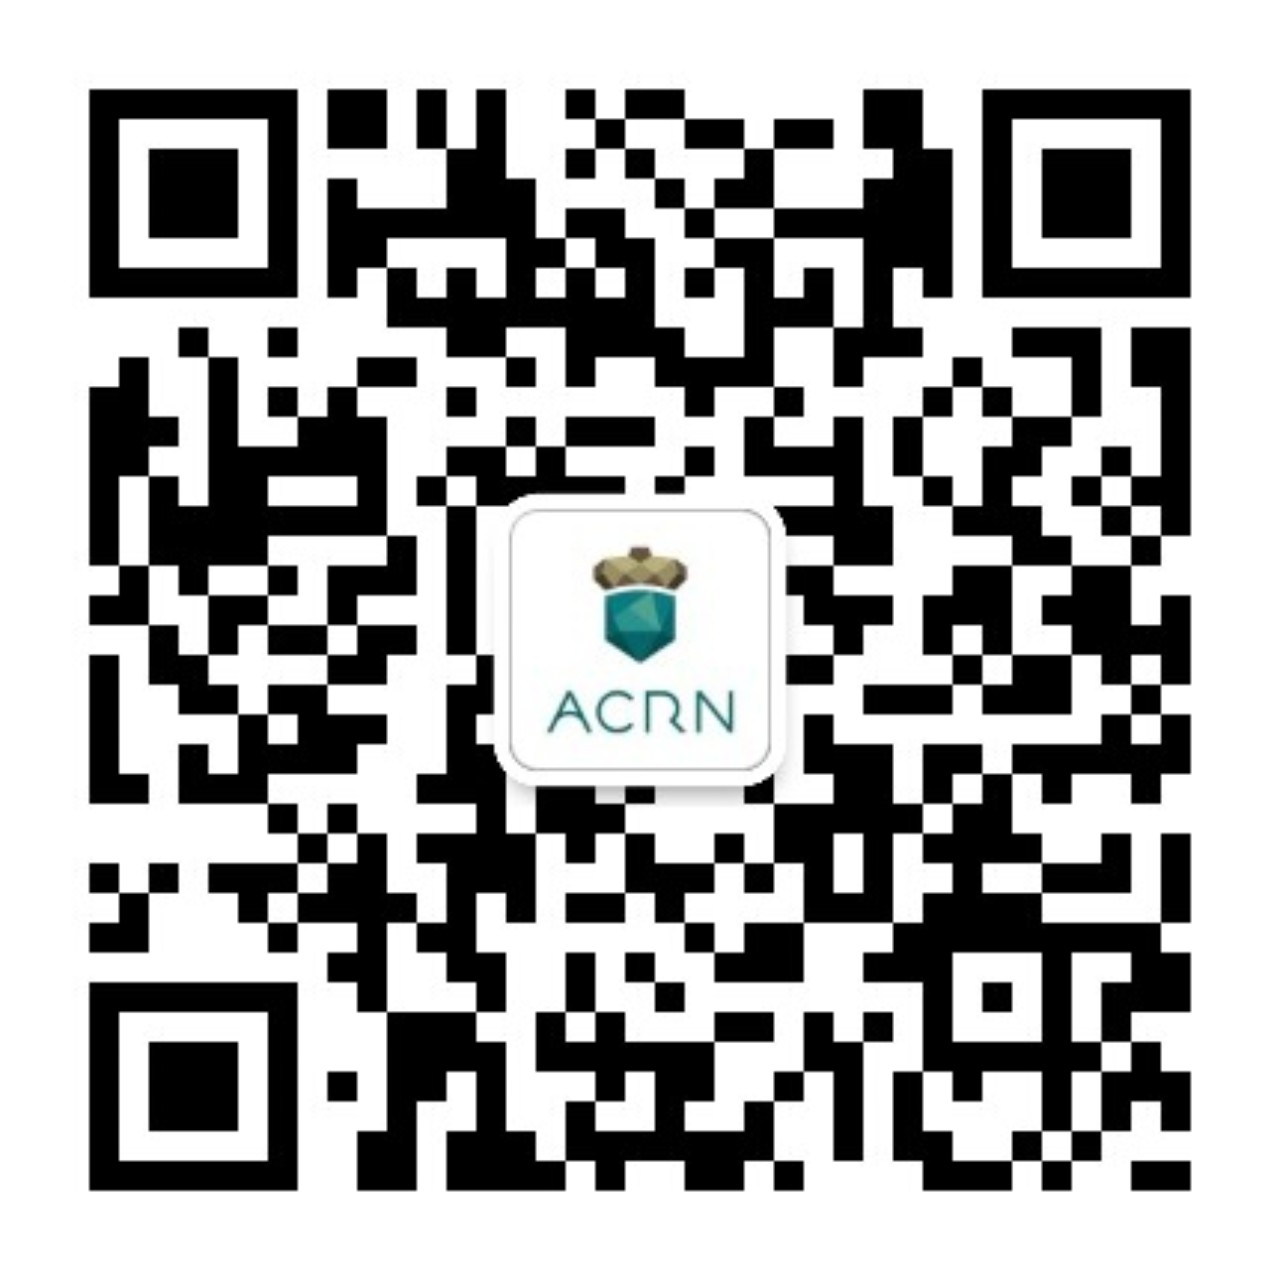 https://projectacrn.org/wp-content/uploads/sites/59/2018/03/ACRN-WeChat3.jpg